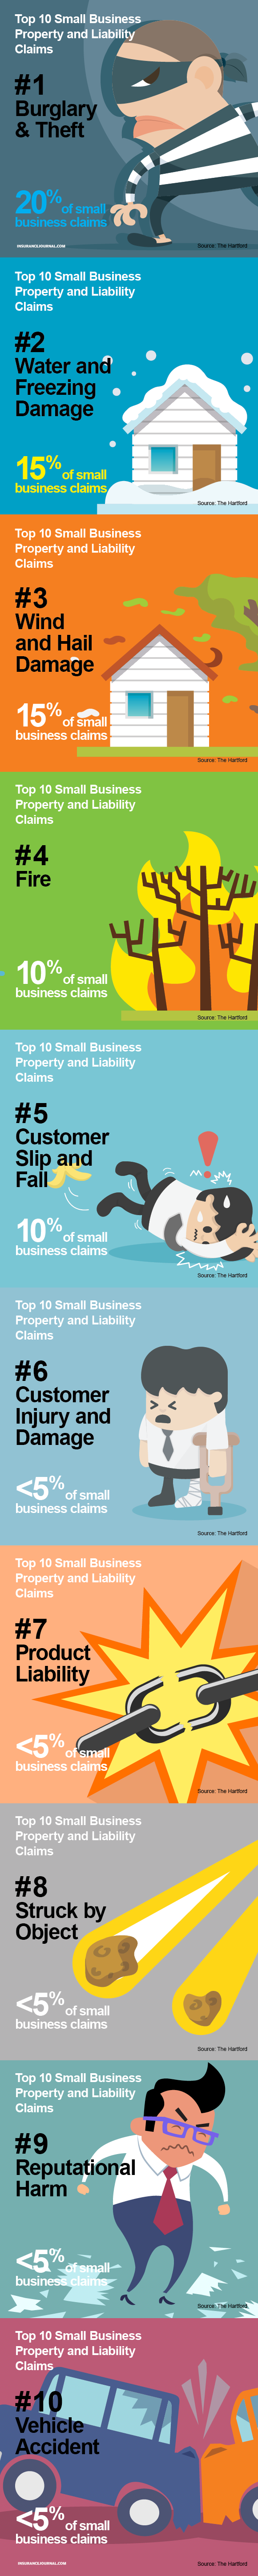 top 10 small business claims